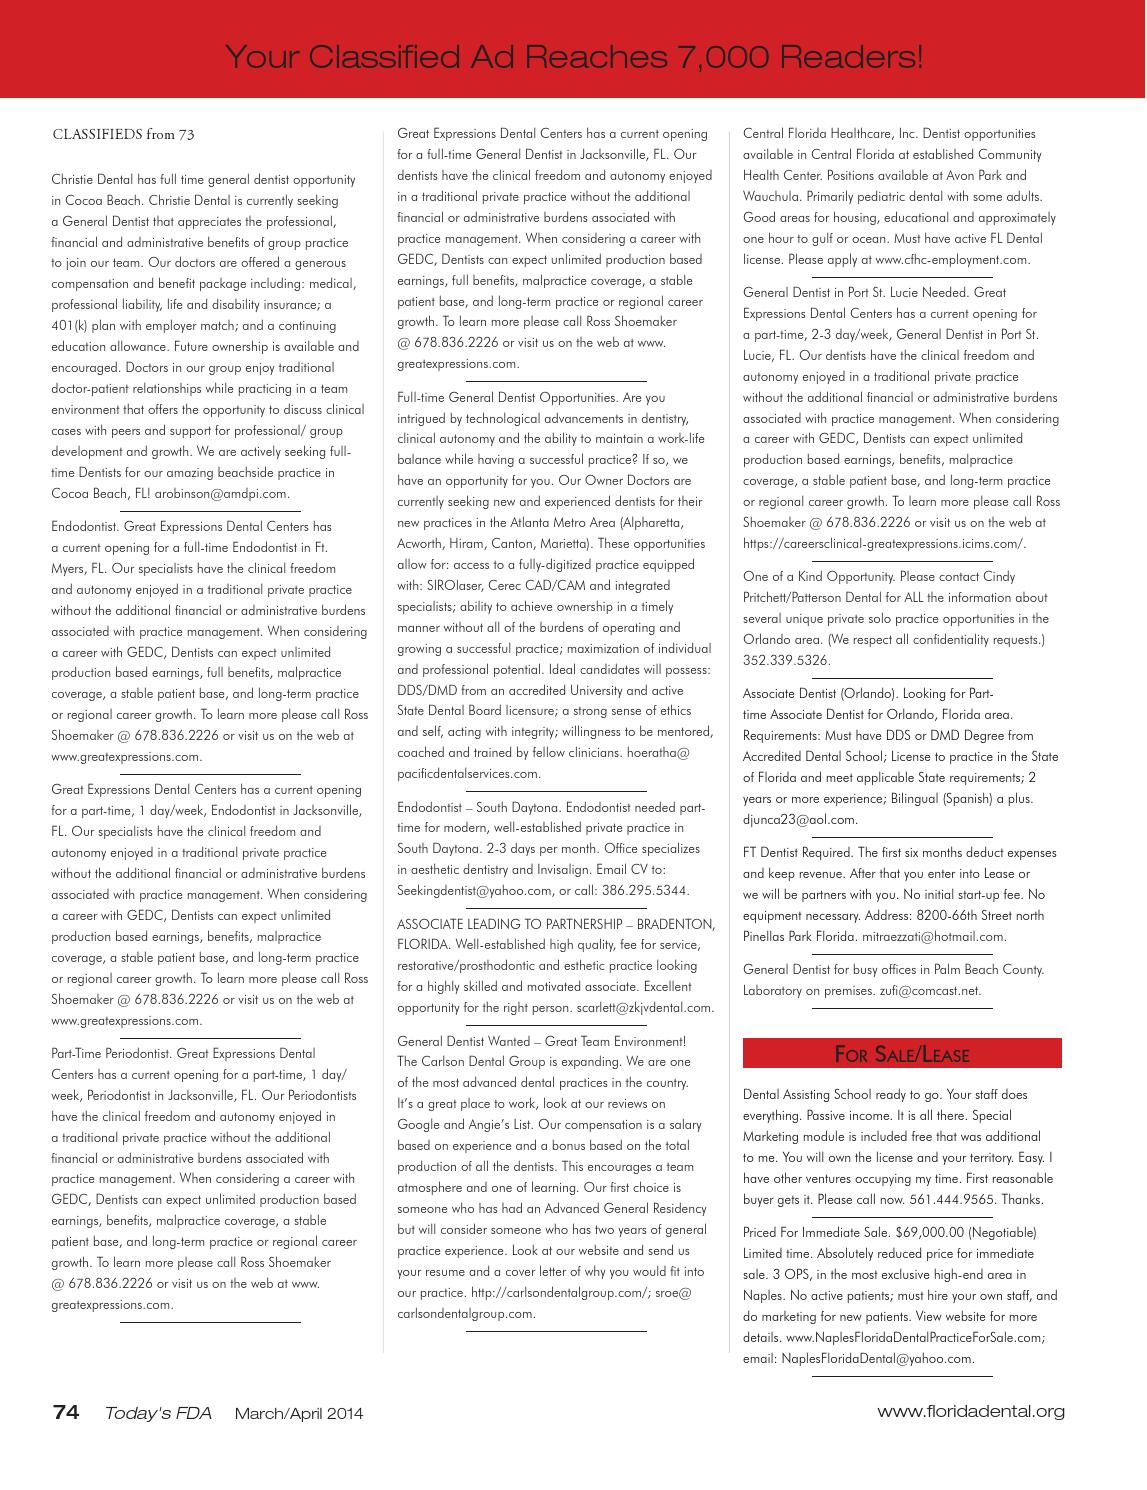 Marchapril 2014 today's fda issuu